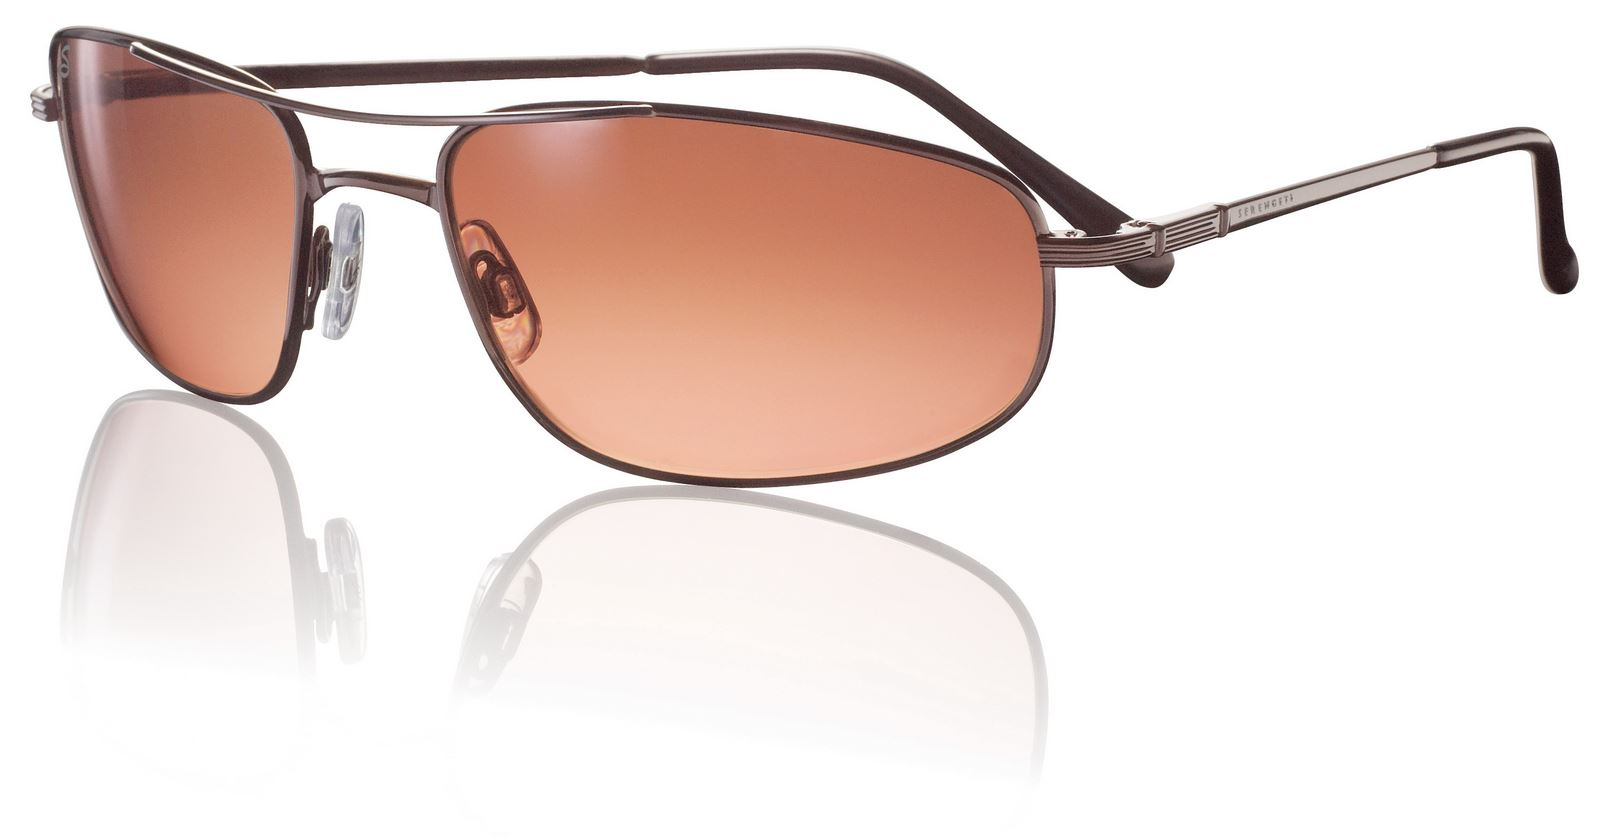 b8a3693a9d Reviews   Ratings for Serengeti Velocity Progressive Sunglasses — 5 reviews  — Page 1